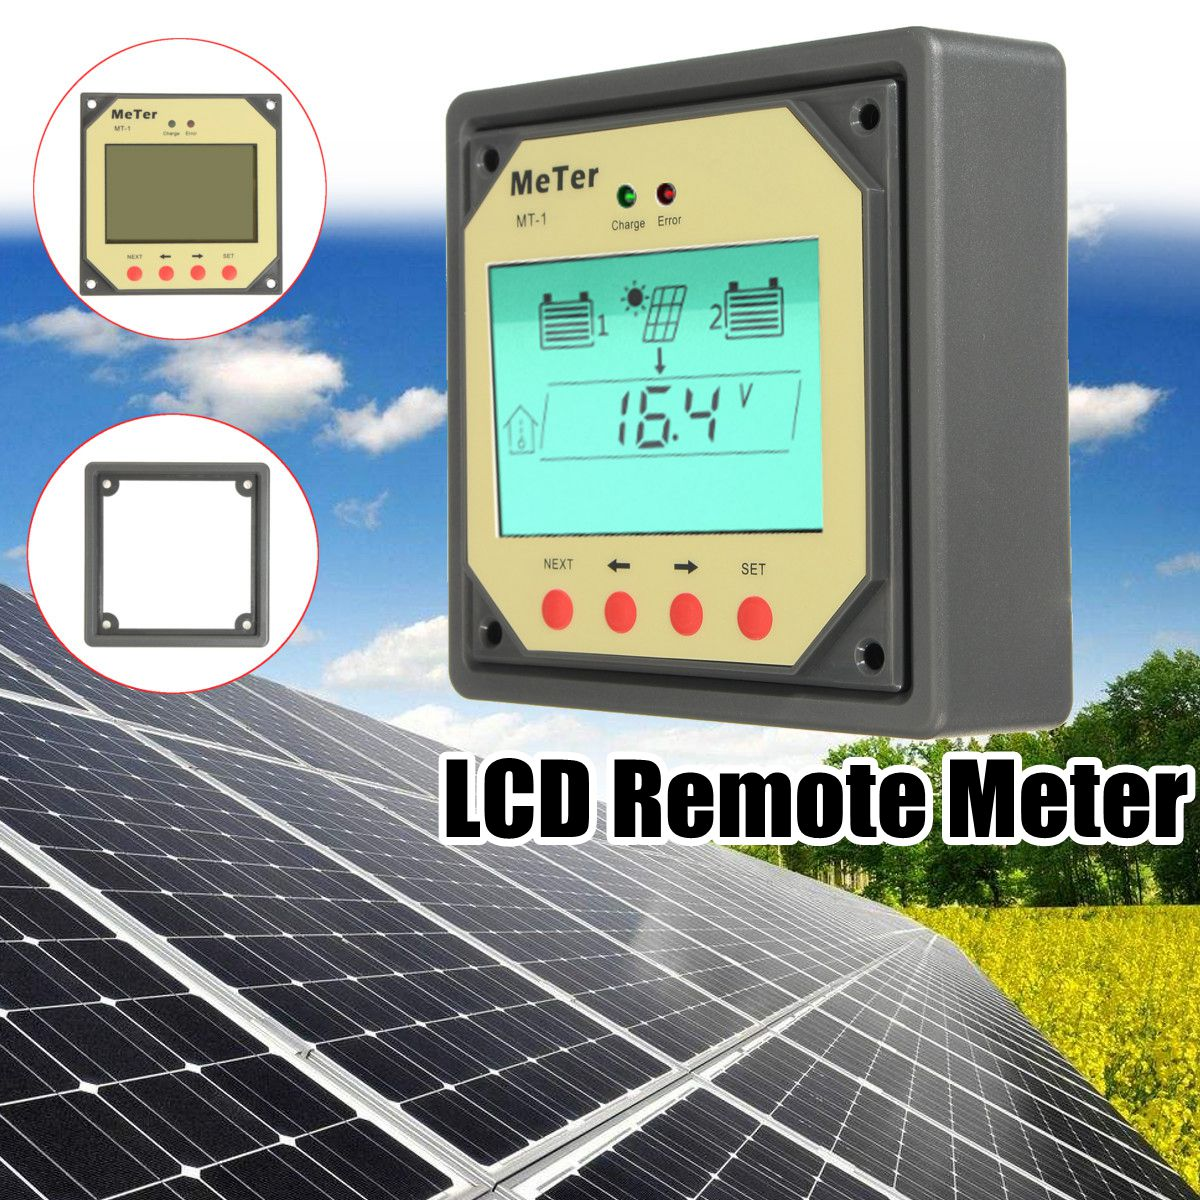 MT-1 Remote Meter LCD display Monitor for 10A 20A Dual Battery Solar Regulator Controller remote meter lcd display mt1 for solar regulator for duo battery two battery